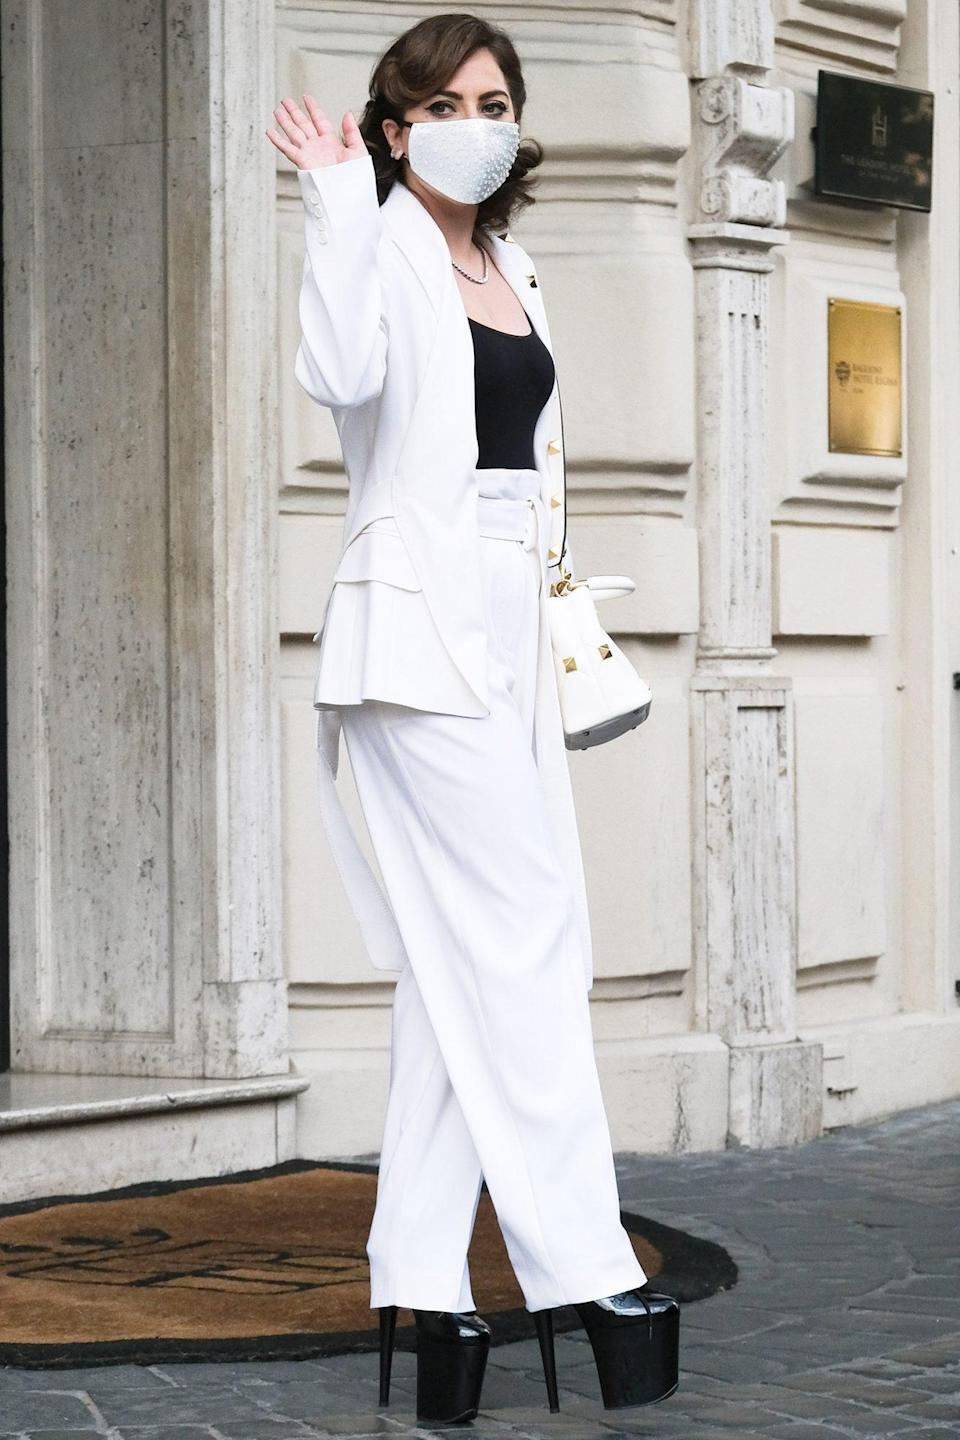 <p>Lady Gaga steps out in a chic, black-and-white ensemble and sky-high heels in Rome on Thursday.</p>